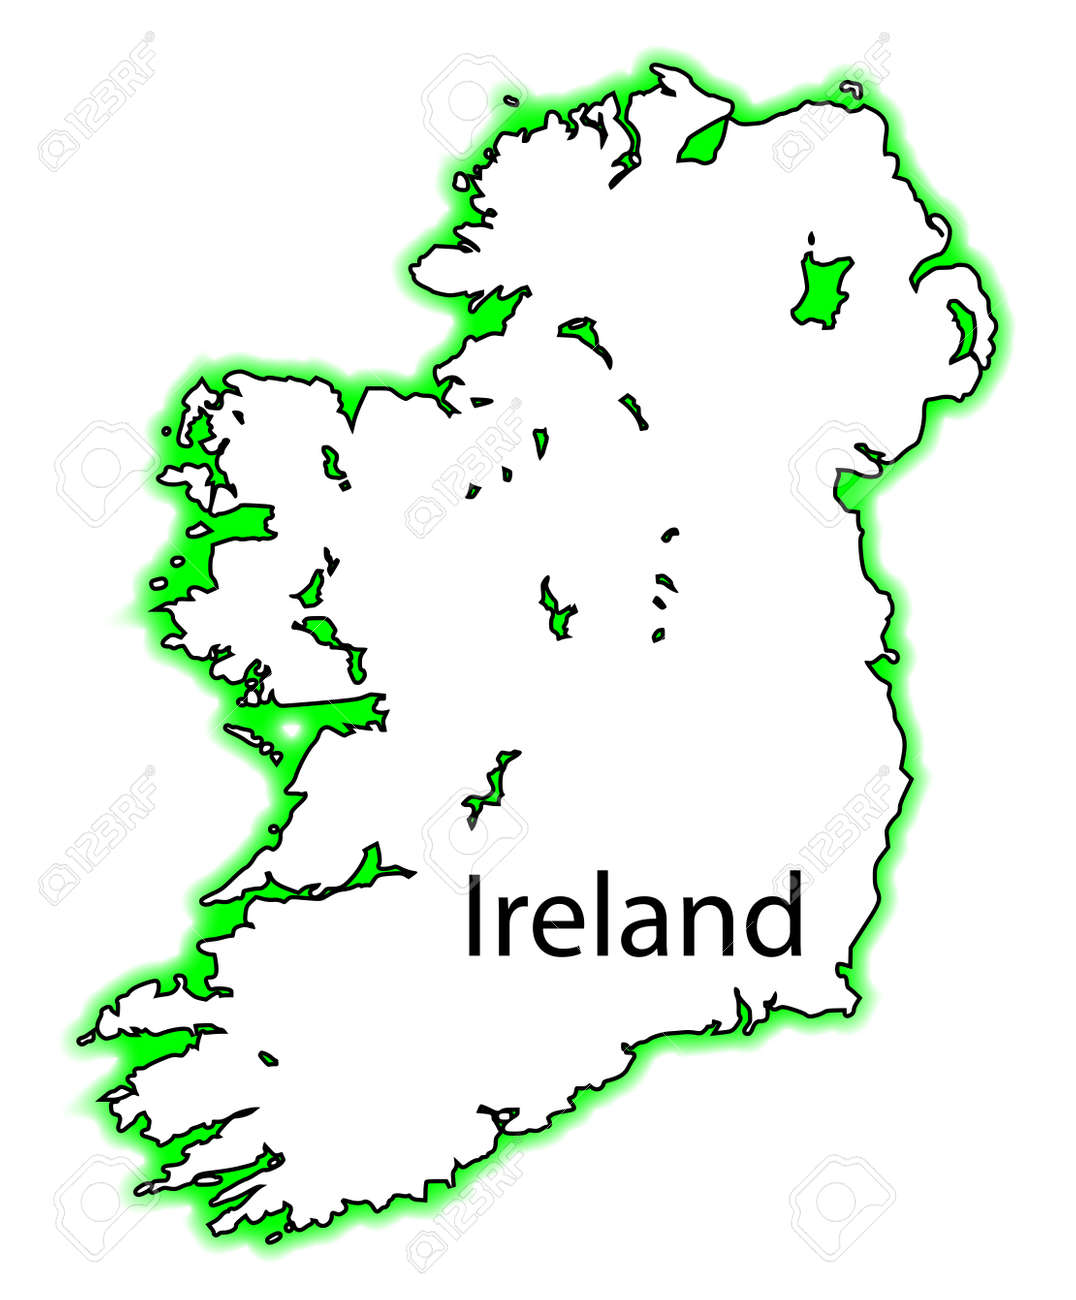 Outline Map Of Ireland.Outline Map Of Both Northern Ireland And Eire Southern Ireland